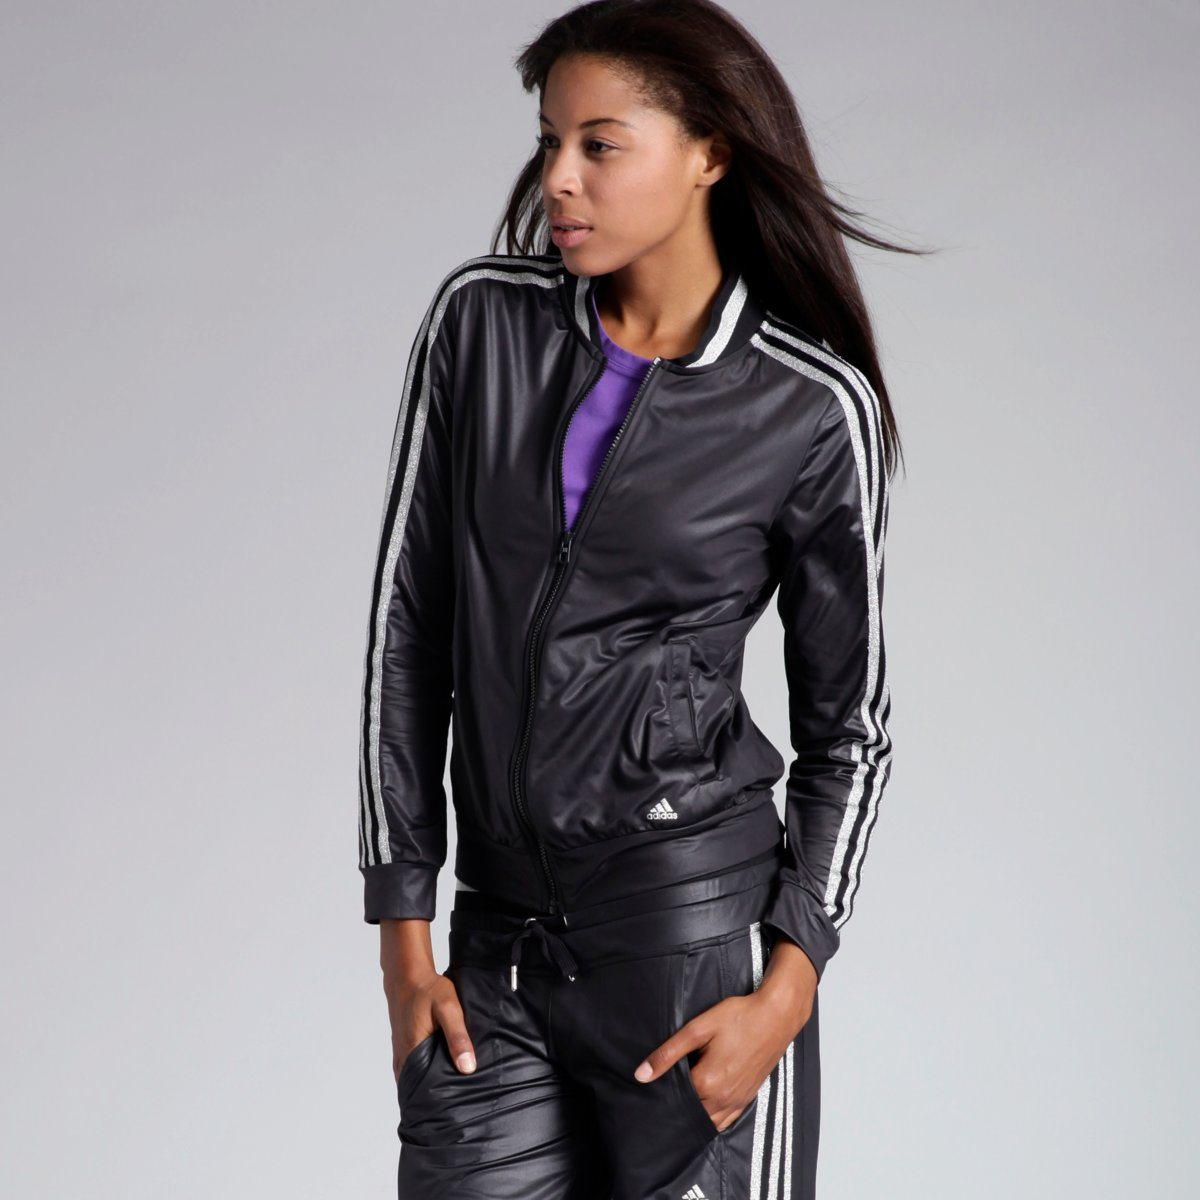 Black Adidas Woven Tracksuit Front Pose